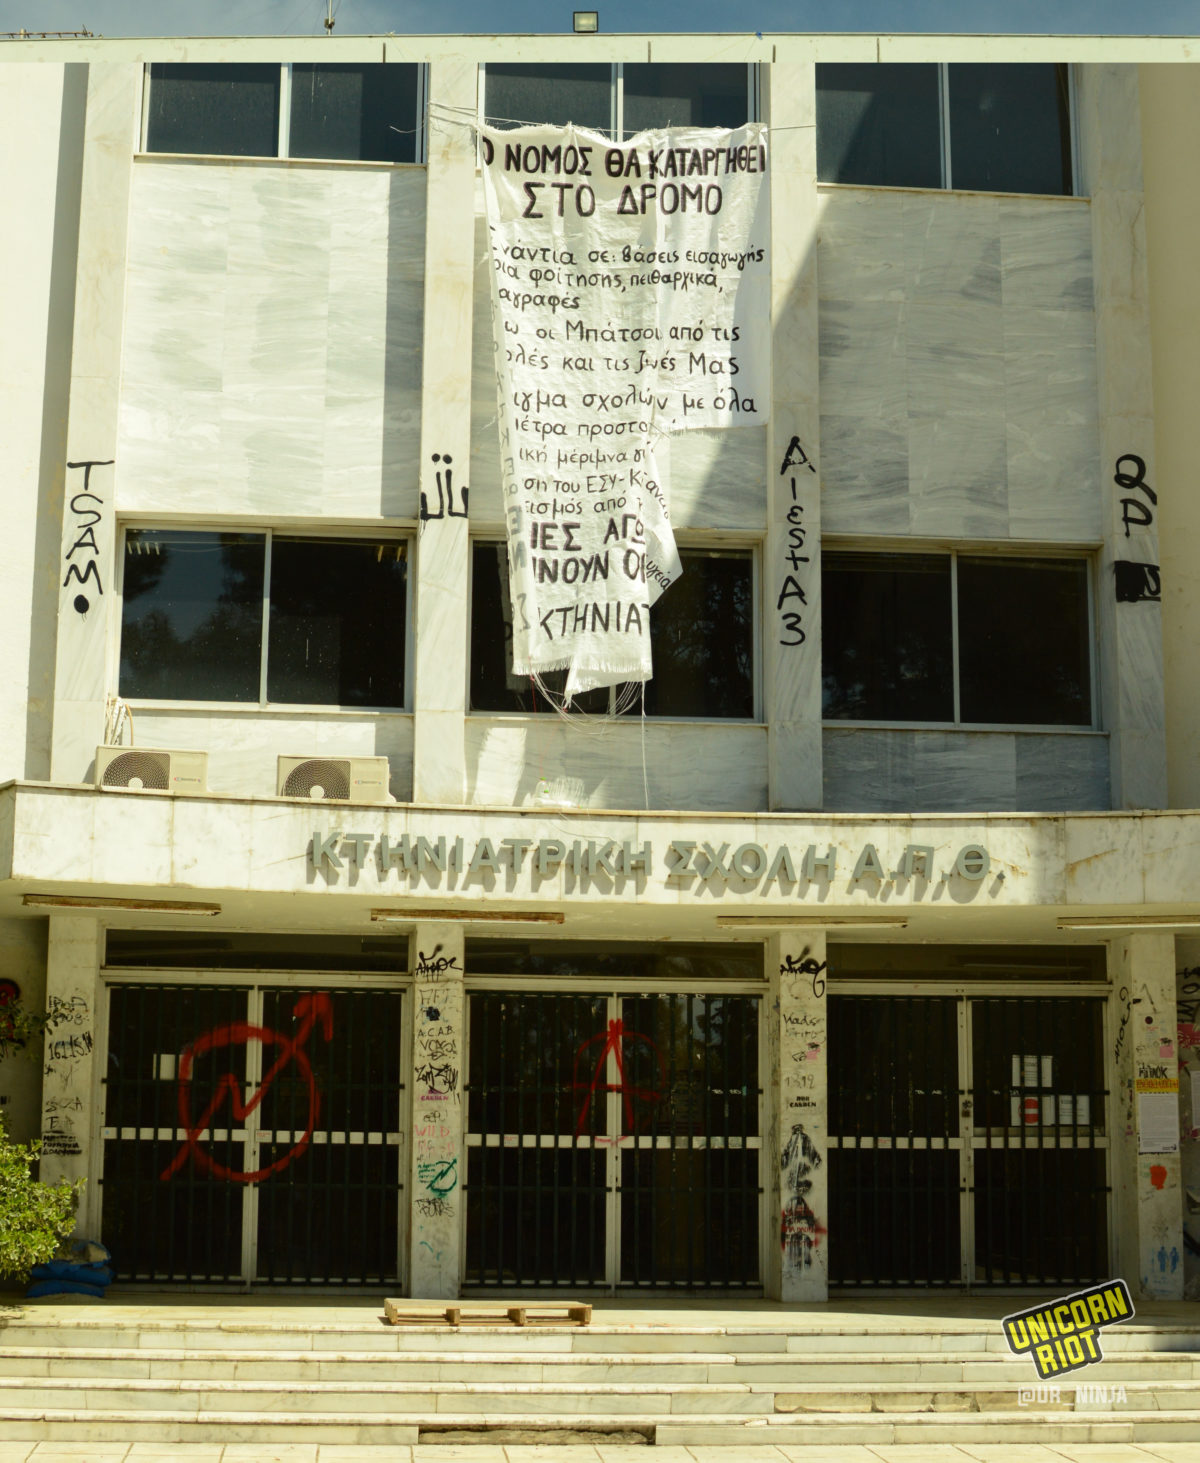 Entrance of the occupied school for veterinary medicine